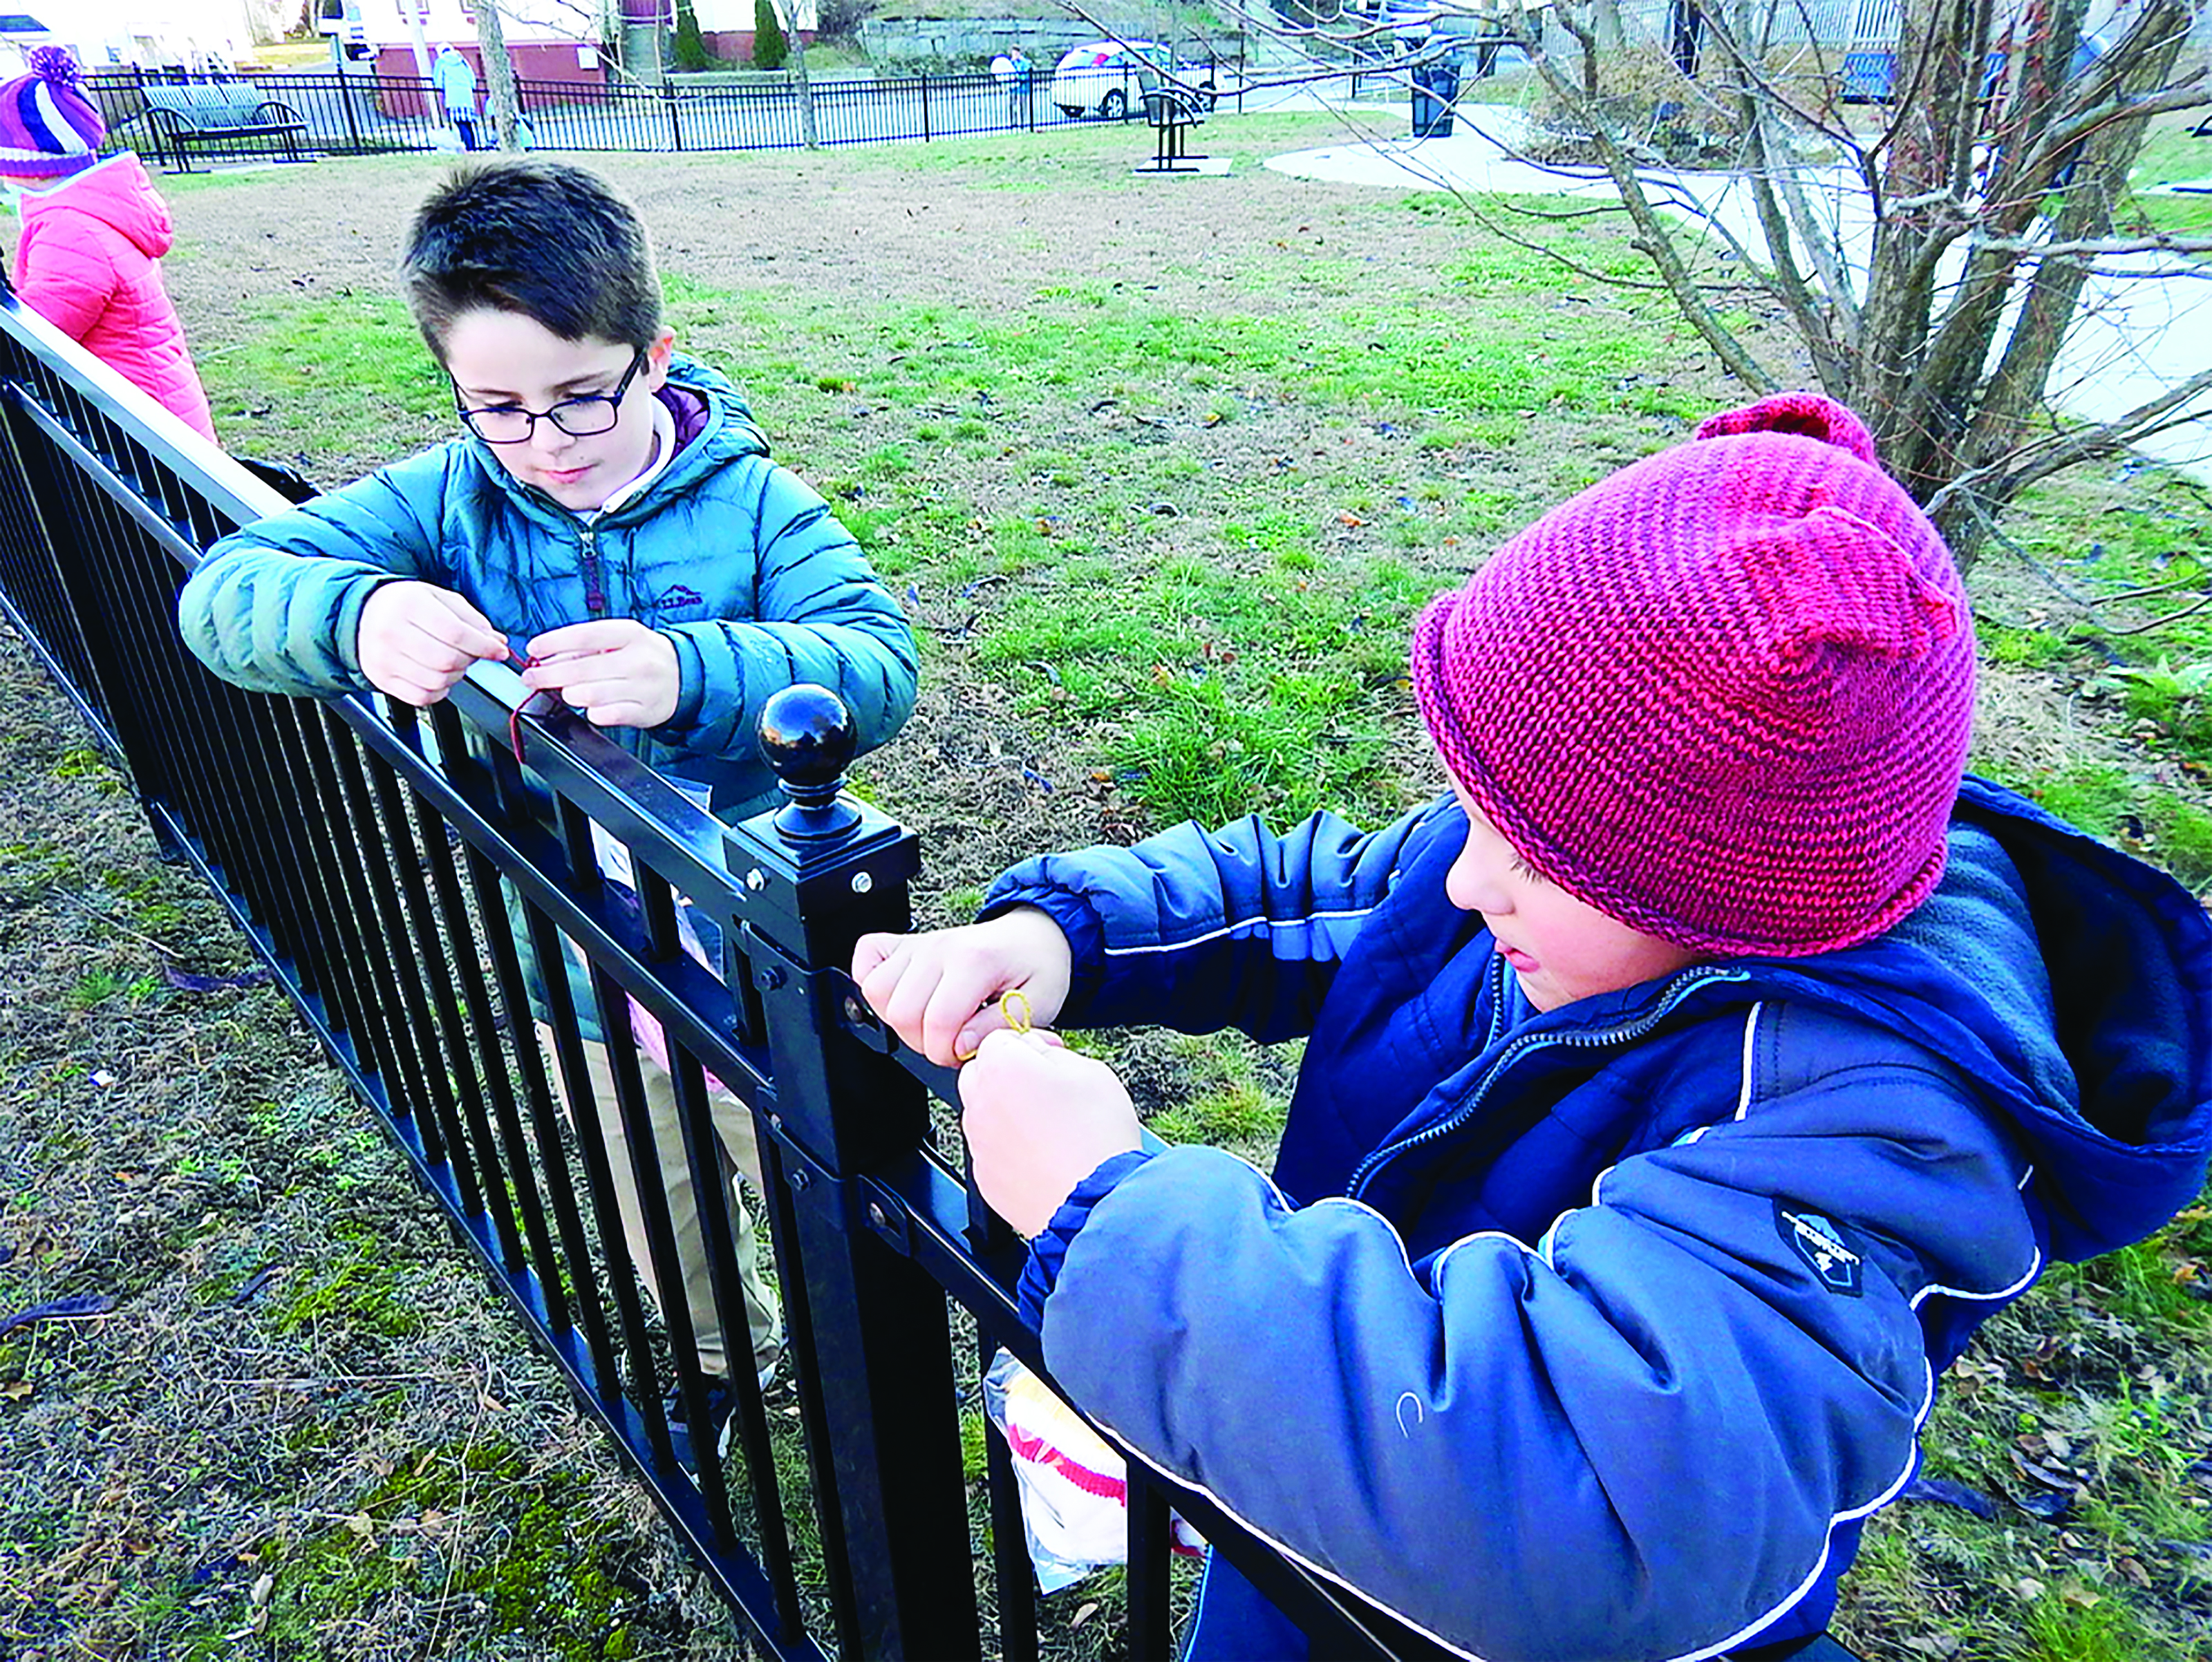 St. James School fourth-graders Aiden Leighton, left, and Zackary Namiotka hang bags containing hats, gloves, scarves and other winter wear items on the fence surrounding the city park at the corner of South and Green streets in Biddeford on Tuesday afternoon. More than a dozen students from the school left the items for anyone in need of them in an 'act of service' on 'Giving Tuesday.